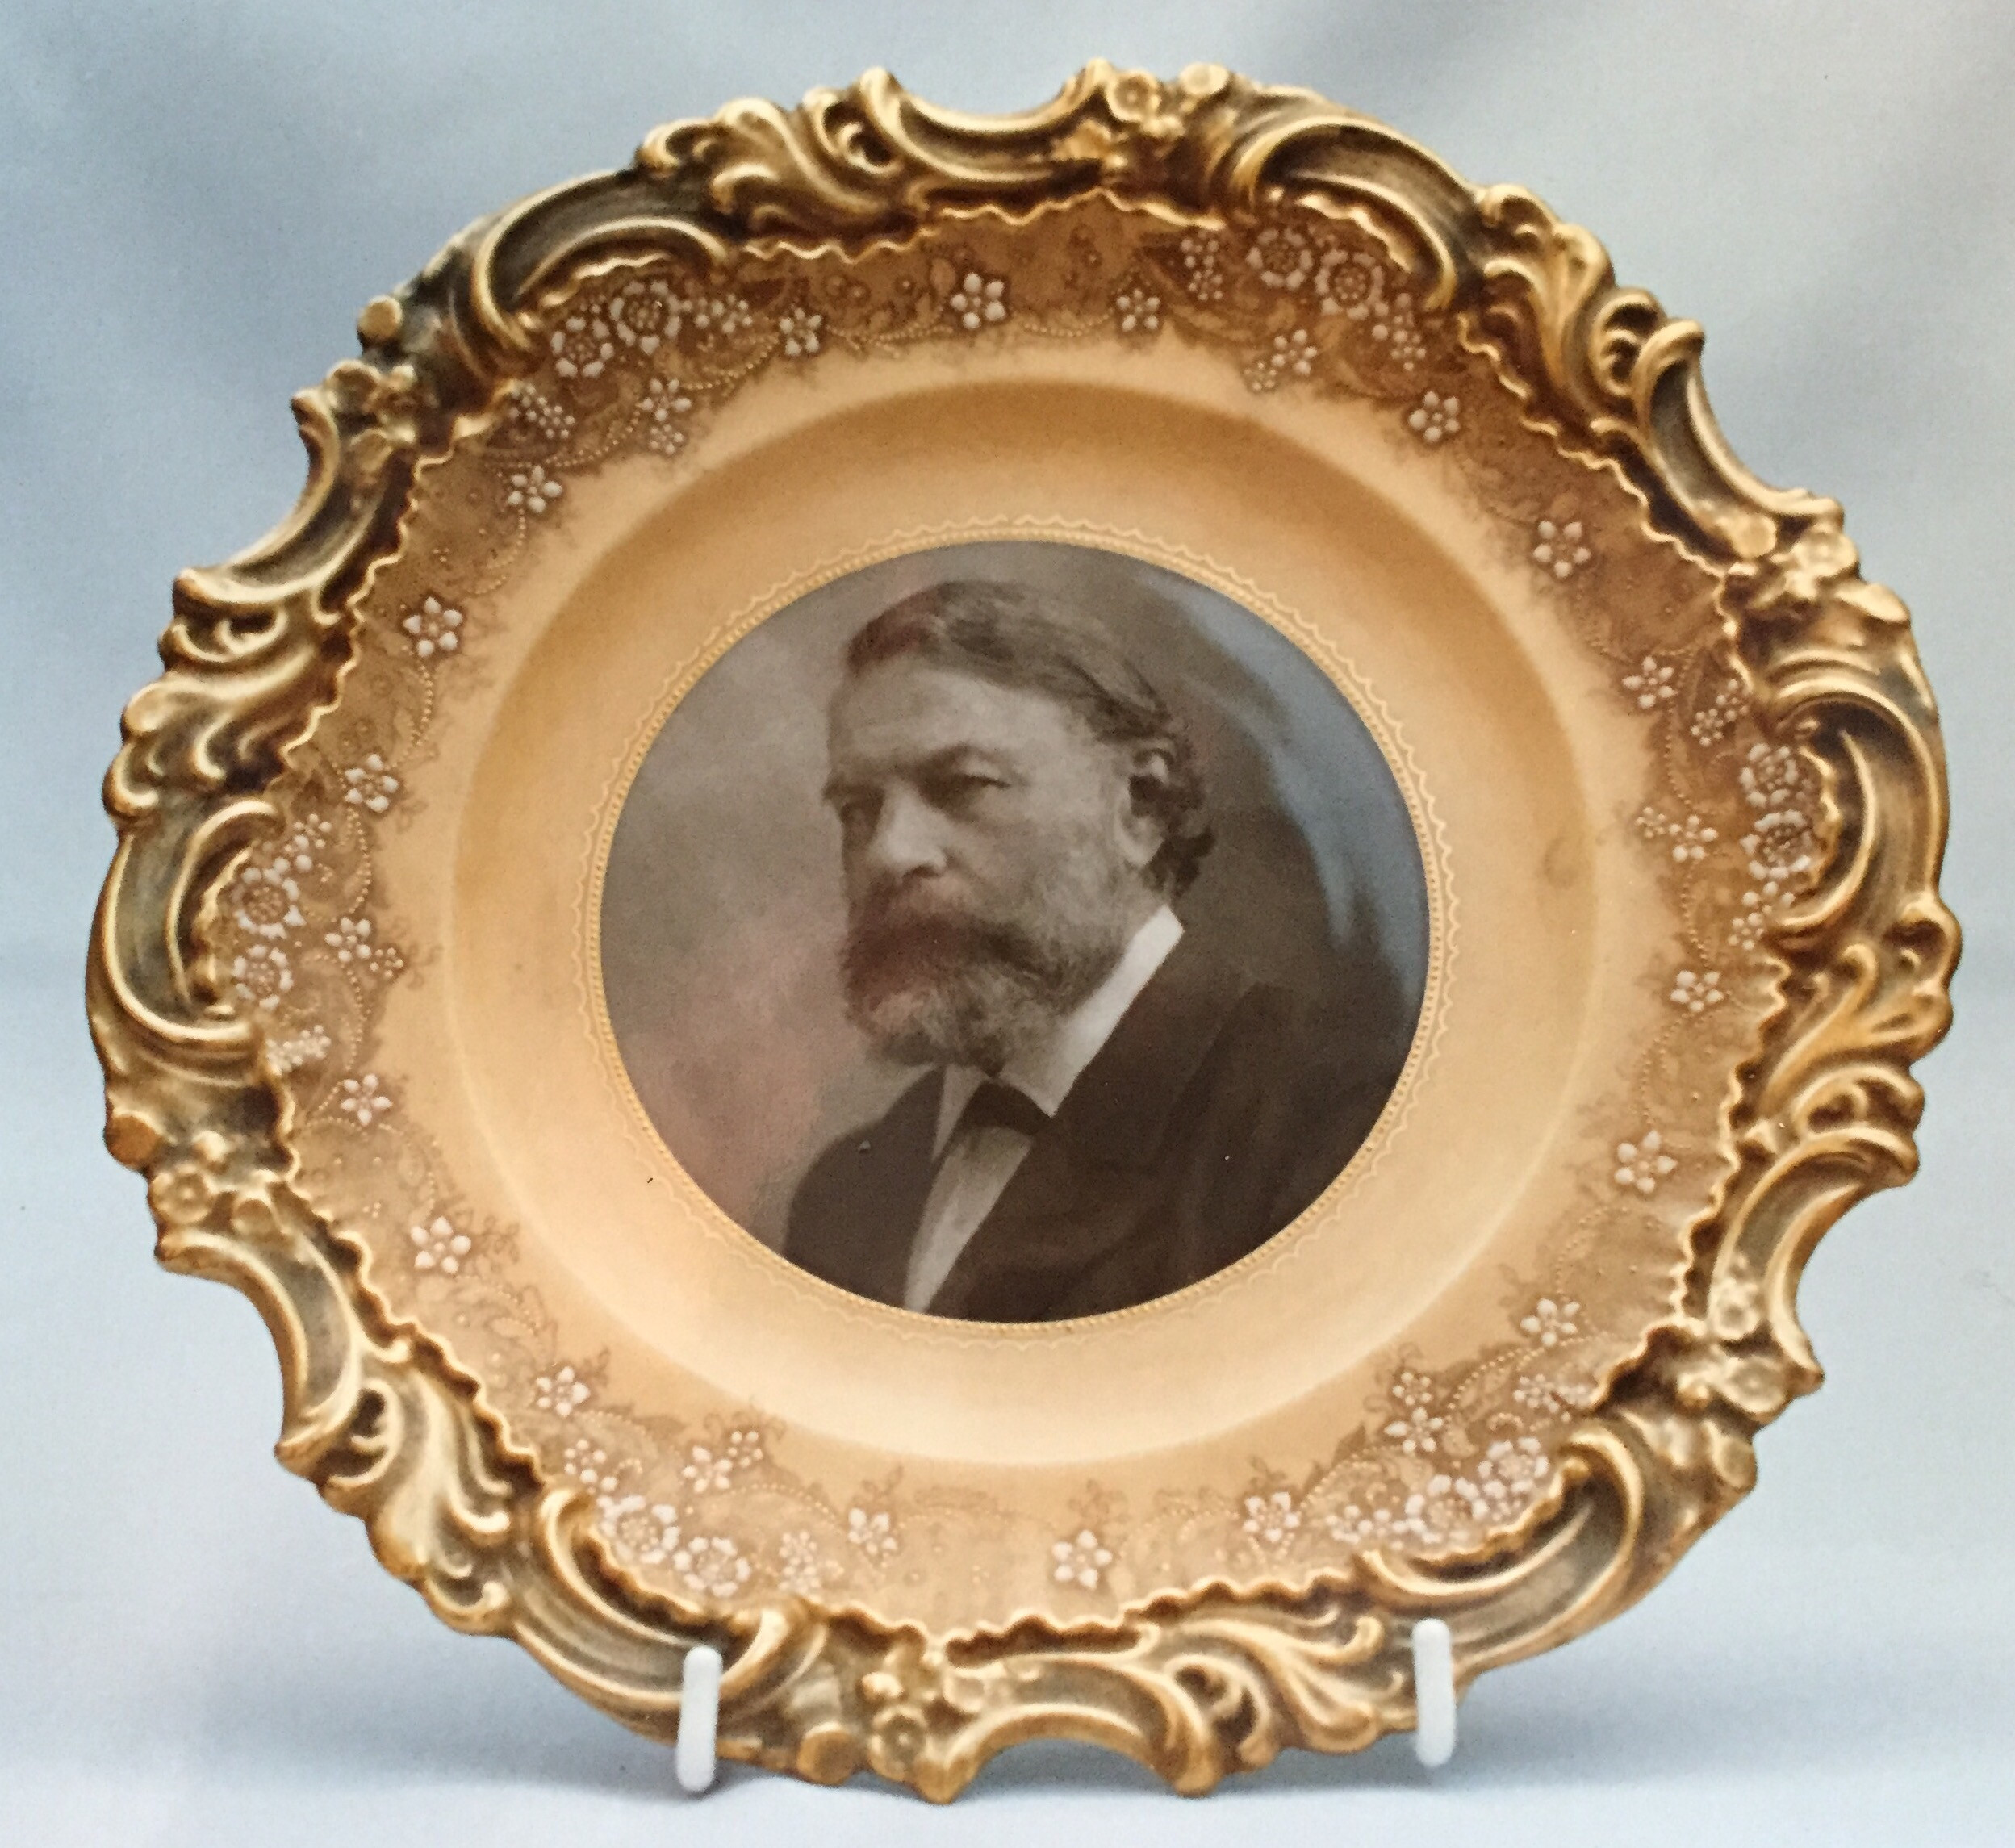 12 Lovable Royal Doulton Art Nouveau Vases 2021 free download royal doulton art nouveau vases of art nouveau doultoncollectorsclub in early plate with a photographic image of joseph joachim a popular violinist